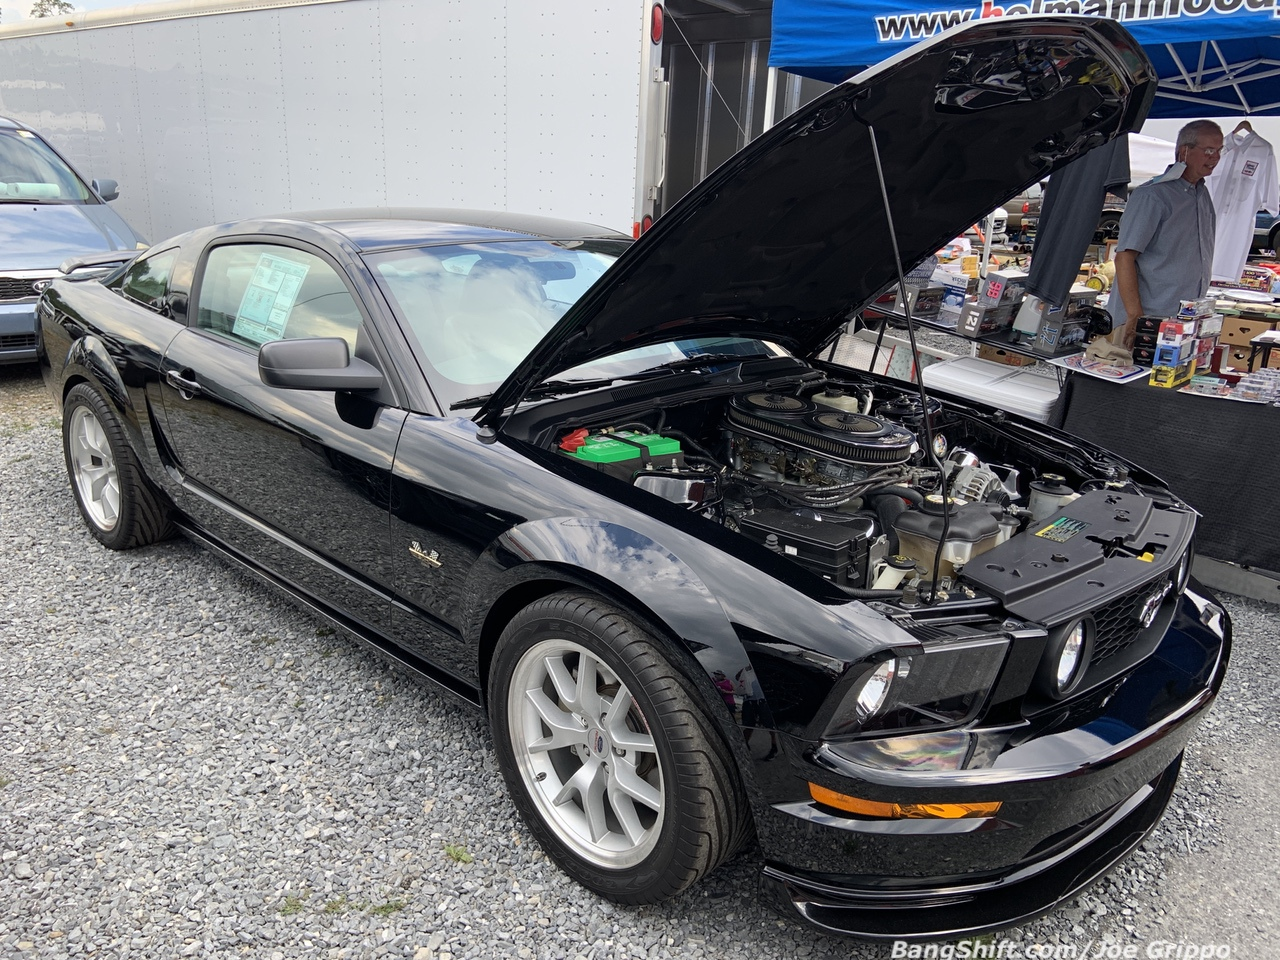 Carlisle Ford Nationals 2020: If You Think You Know, Look Again…